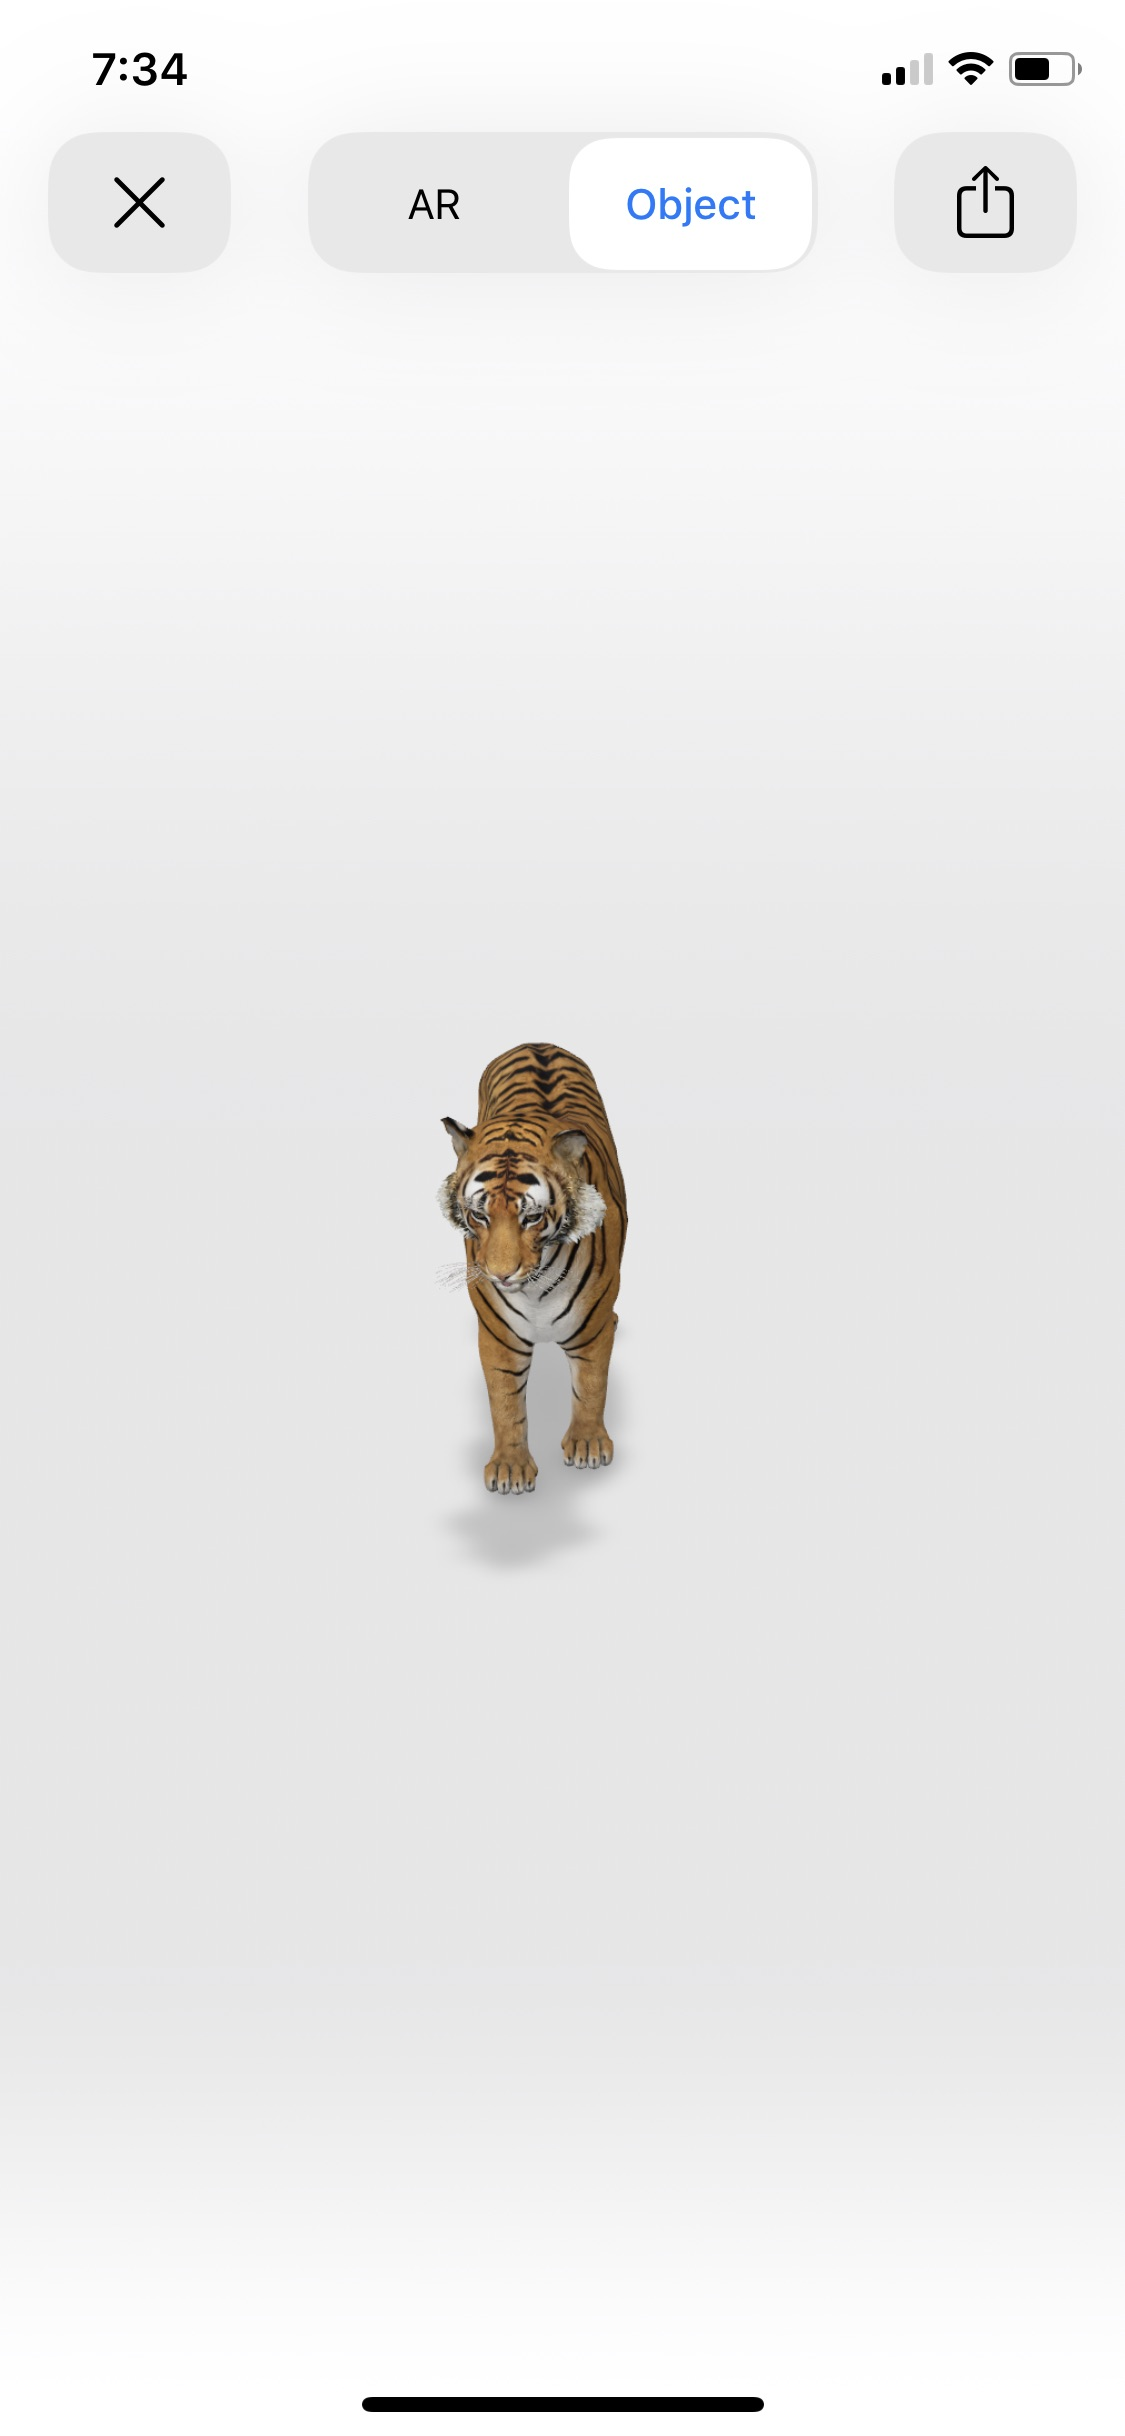 I Am Able To Search View The 3d Animals But Cannot Hear The Sounds Associated With Each Animal Google Chrome Community